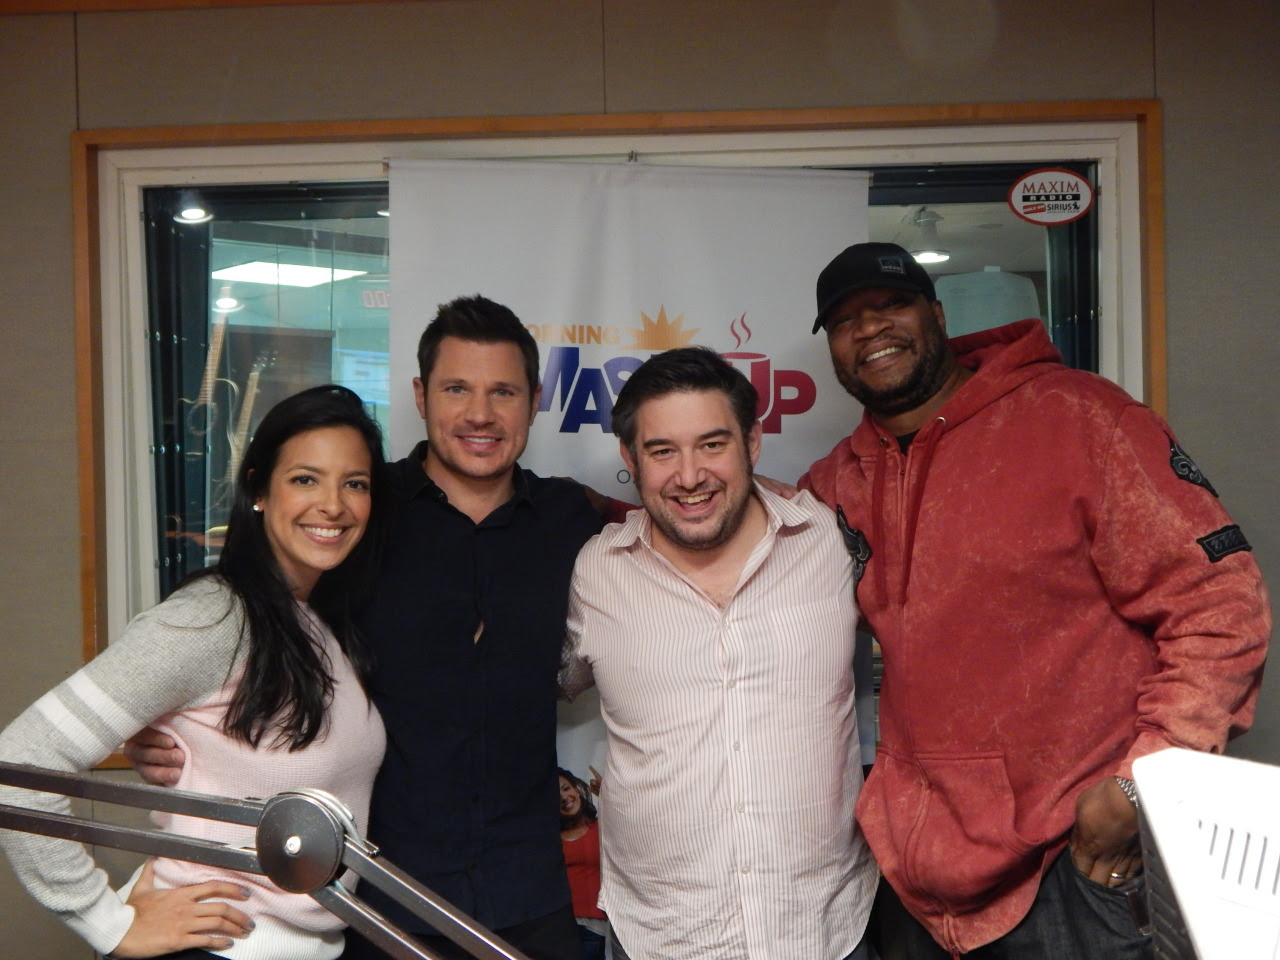 Nick Lachey is such a good guy, really fun to talk to, and our bud. Always a pleasure having him in studio!  Nick tells us about going to Disney for his & Vanessa's birthdays, whether Camden is ready to be a big brother, and his new album, Soundtrack Of My Life. Plus, we find out he & Stanley have something in common - car service! http://hits1.co/1A8d3D9  We get Nick's reaction to an old school Censor This with one of his songs with 98 Degrees, his holiday plans, how he feels about his Bengals this season, and whether or not he's into fantasy football. http://hits1.co/1vkO1Pj